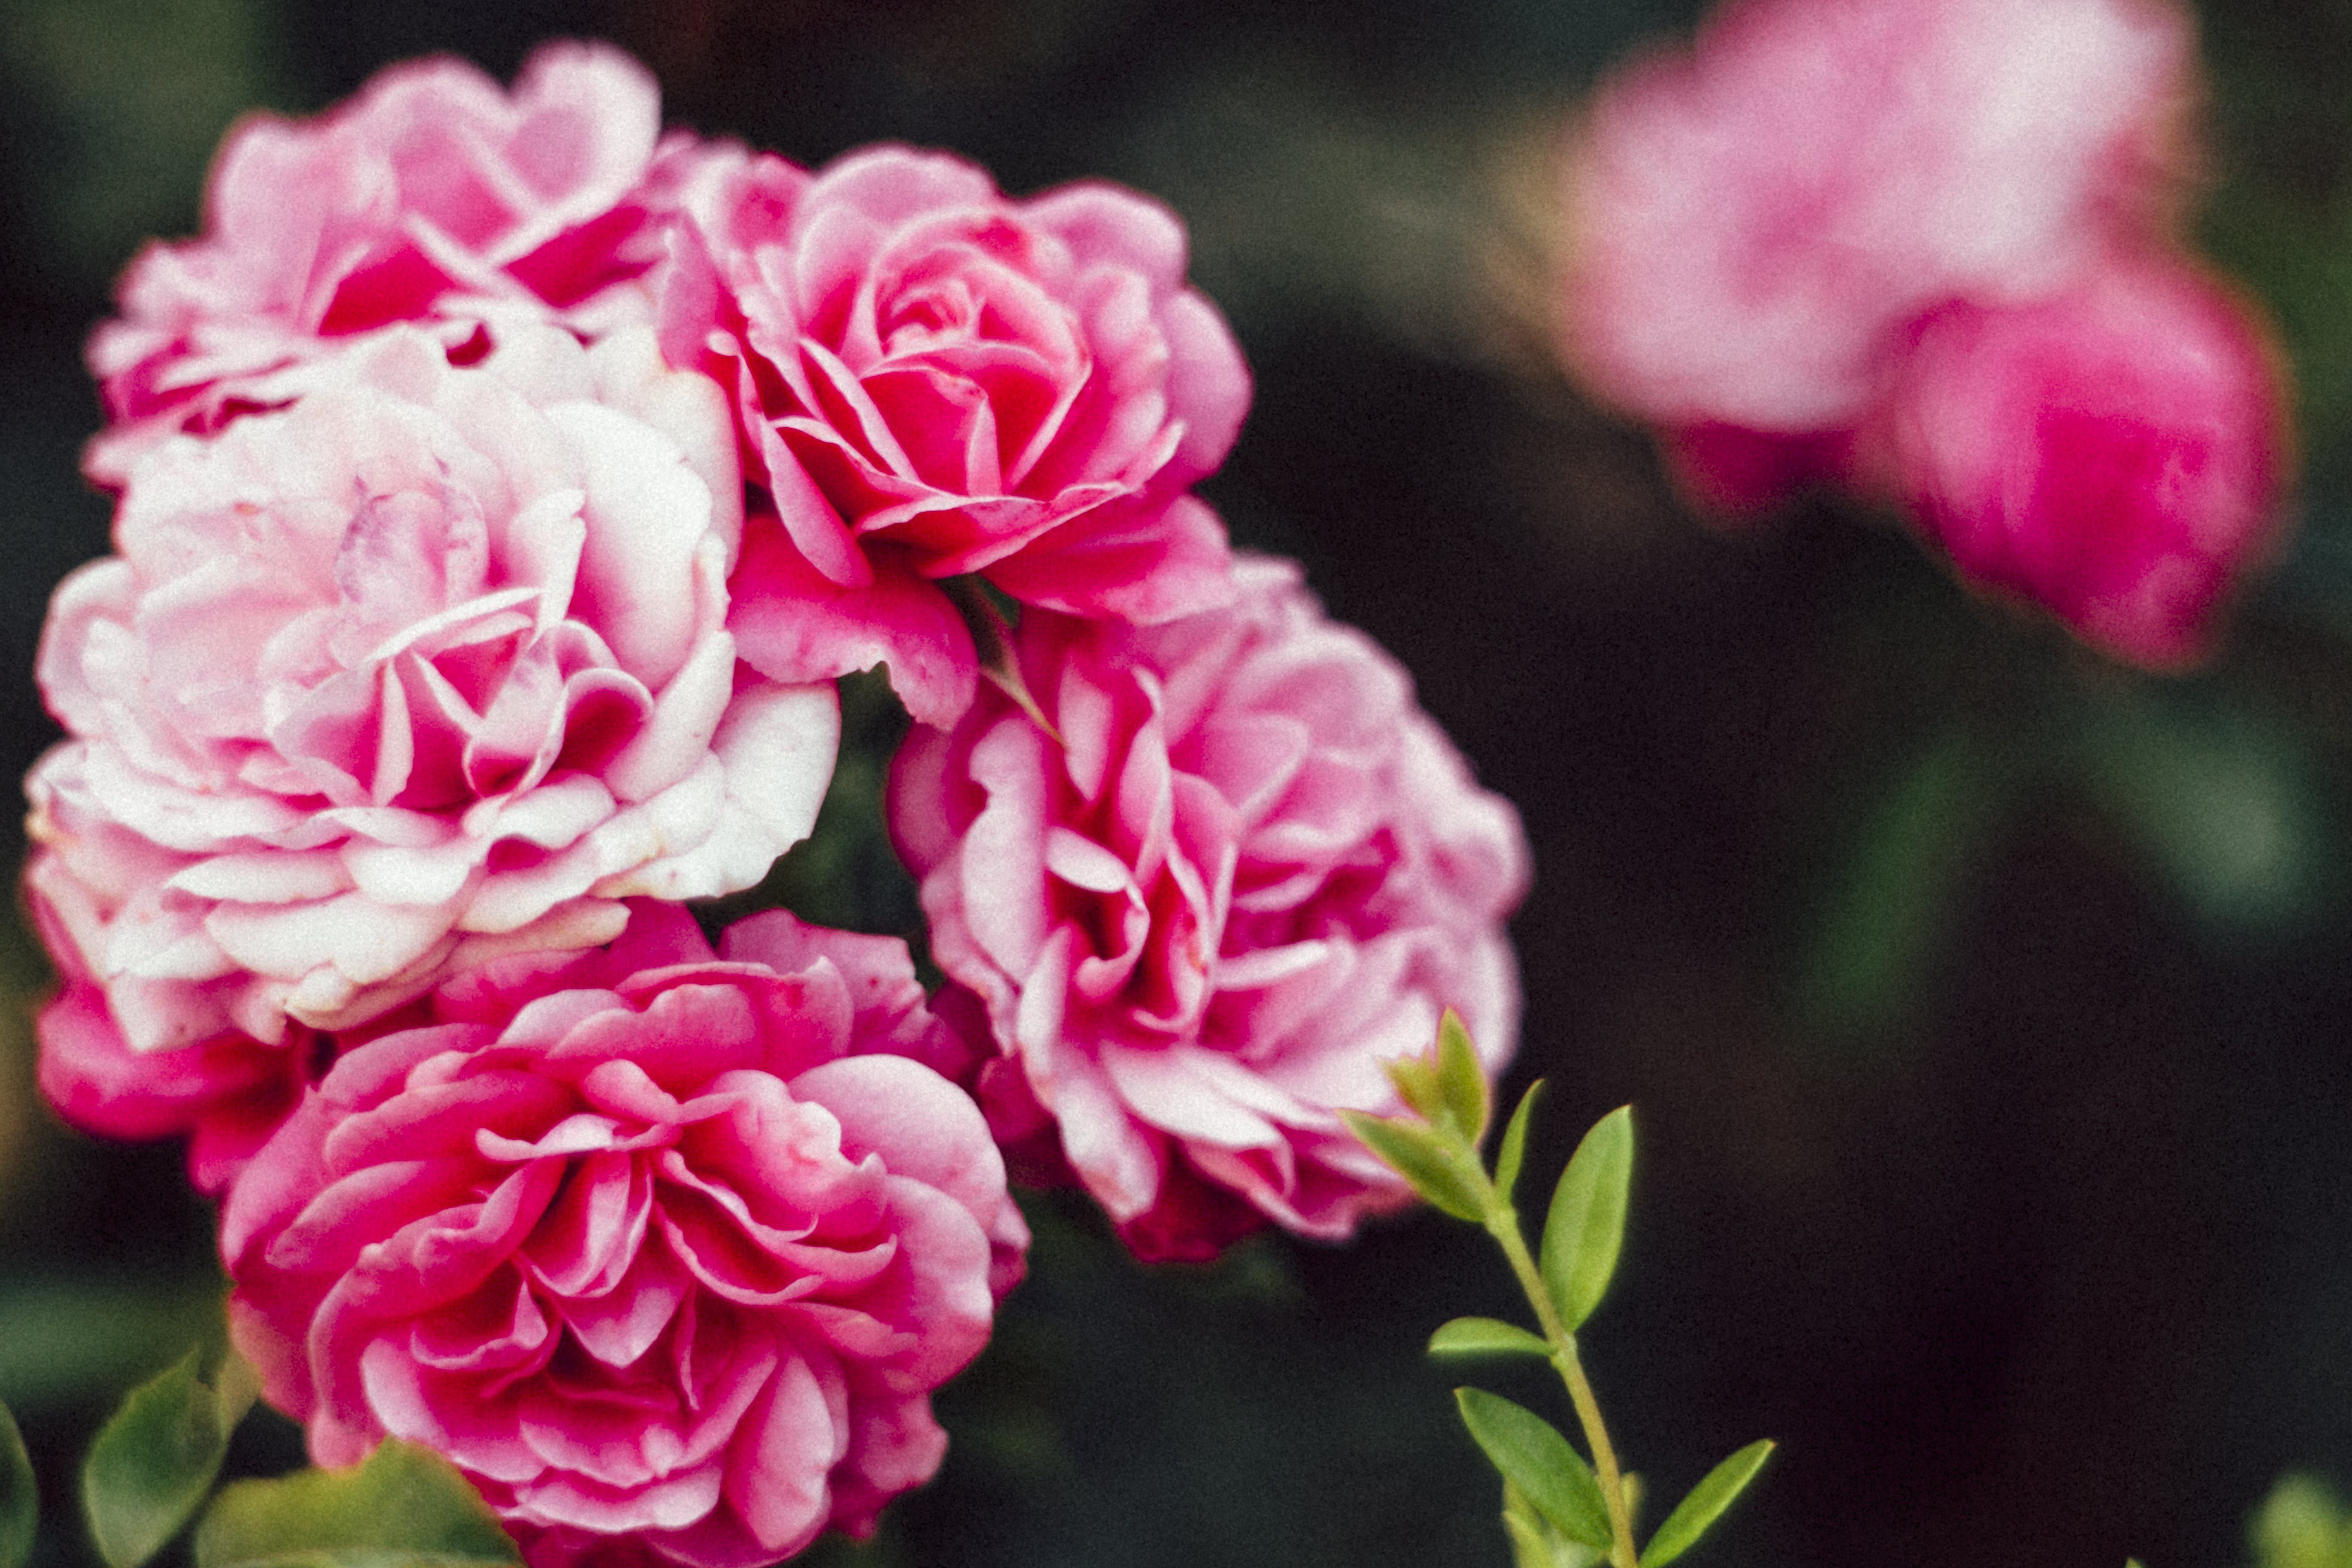 Selective Focus Photo of Pink Flowers